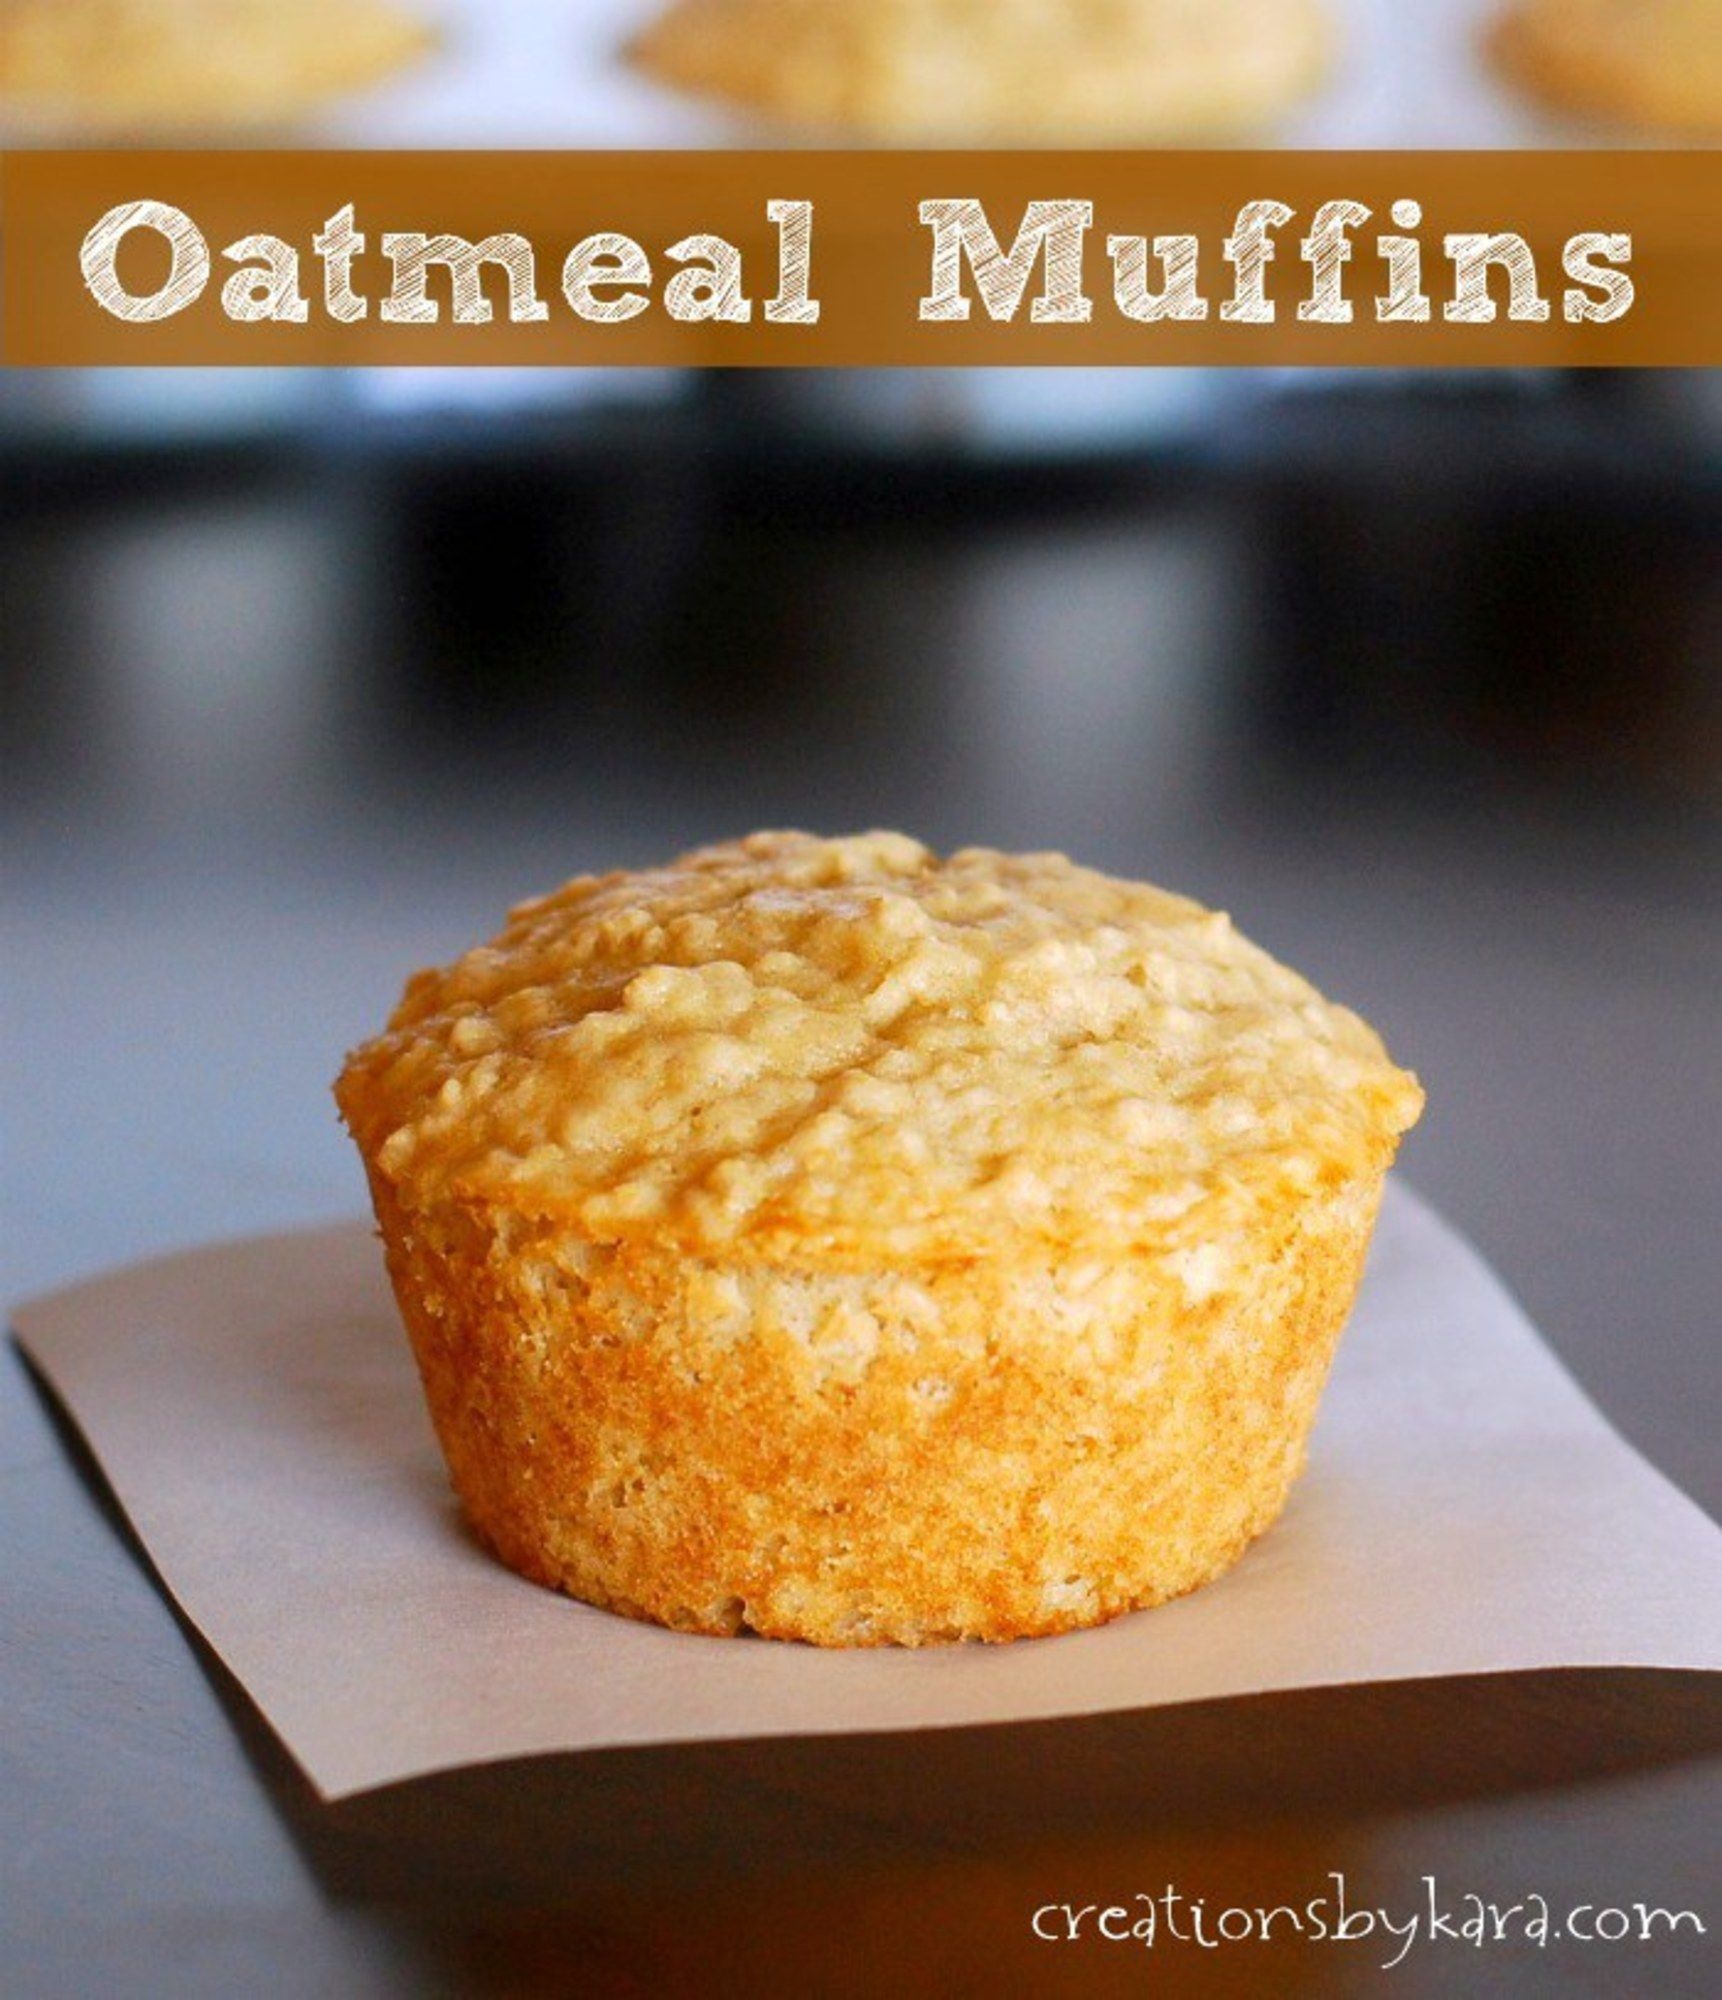 Buttermilk Oatmeal Muffins Recipe Oatmeal Muffins Oatmeal Muffin Recipes Breakfast Muffins